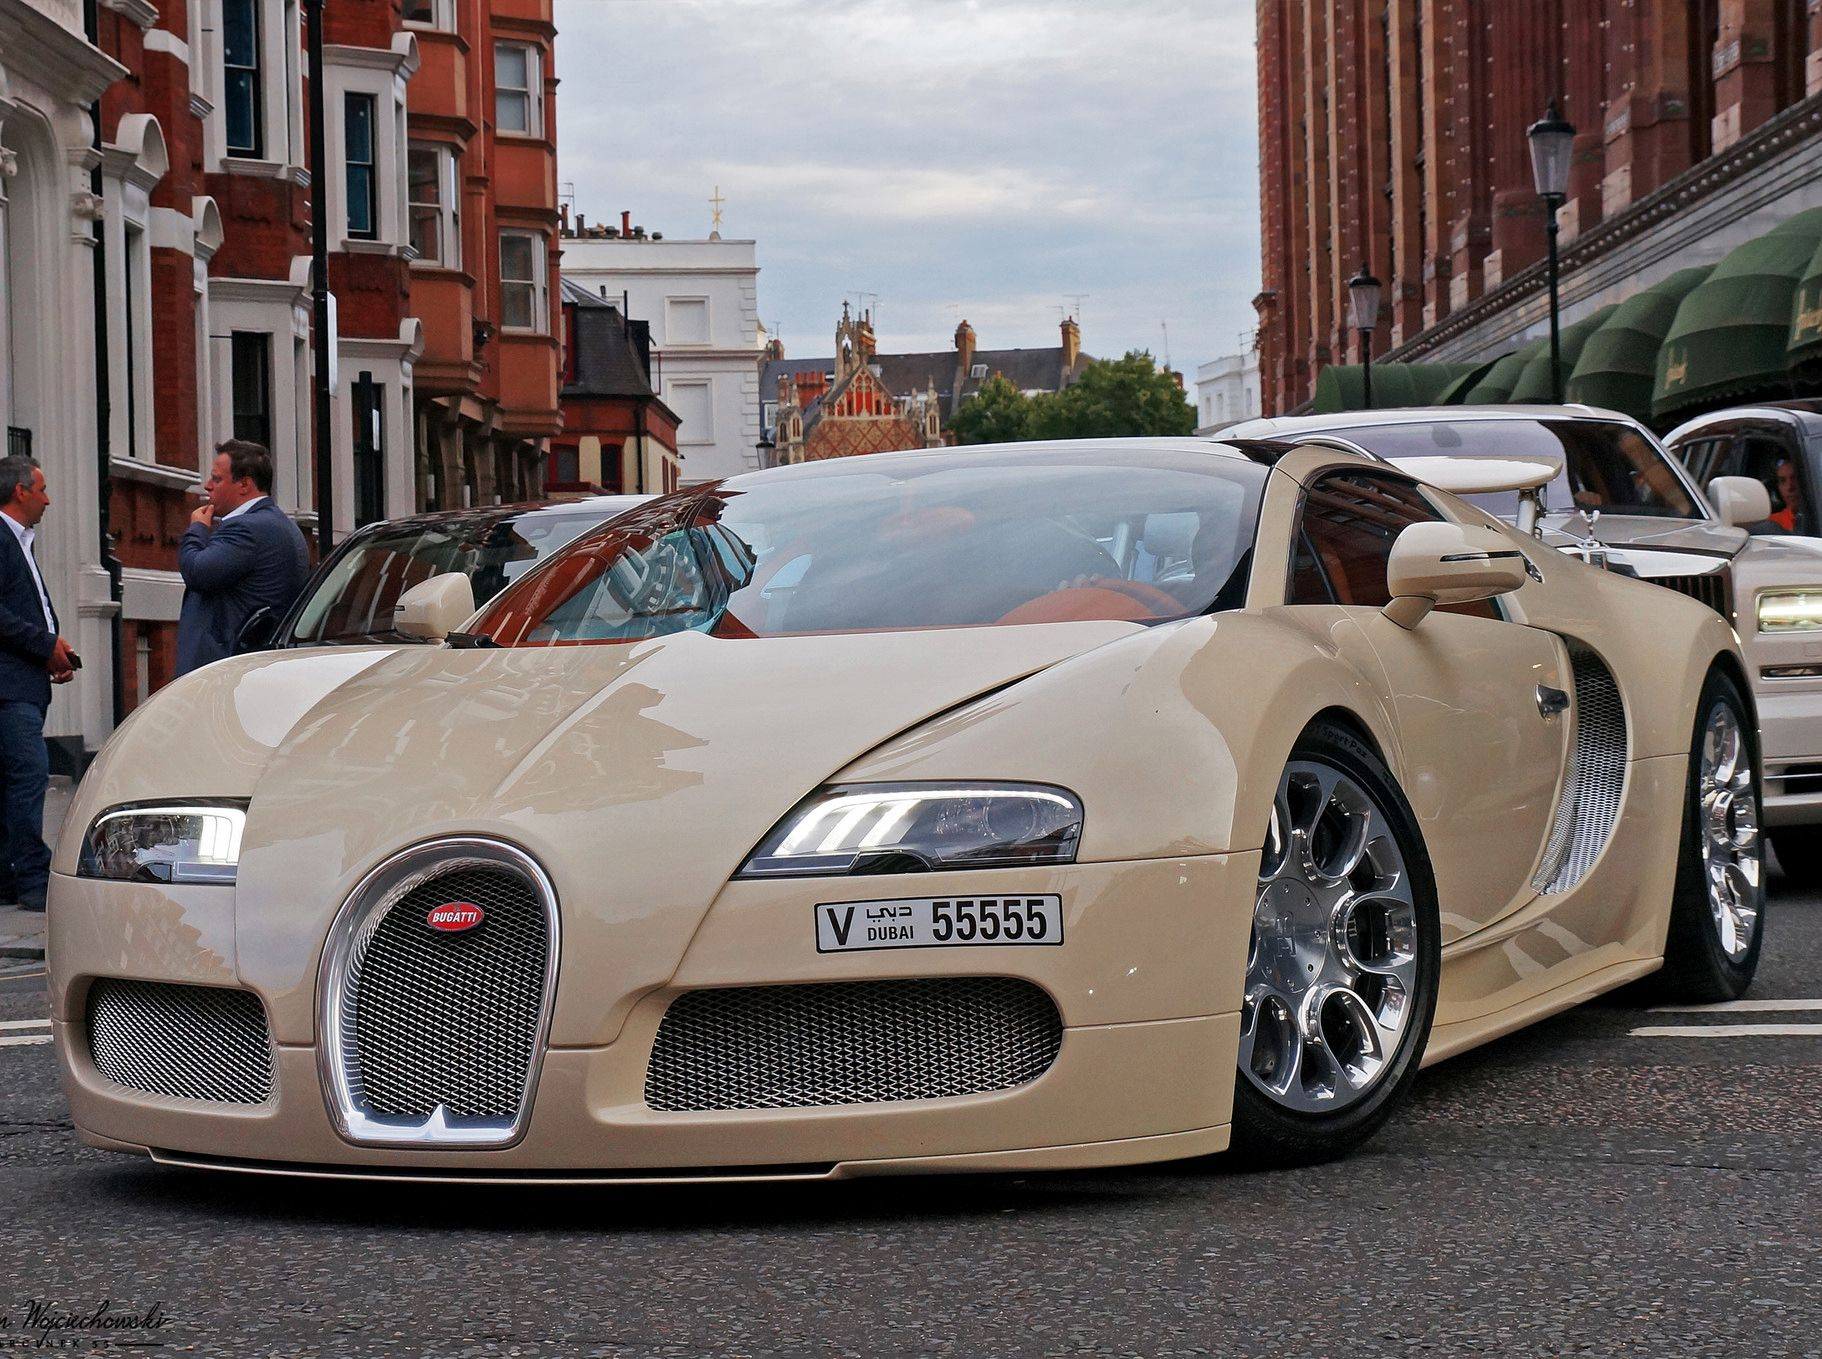 07c24911a0f0e9c4dca631af3d971119 Surprising Bugatti Veyron Price In Bahrain Cars Trend